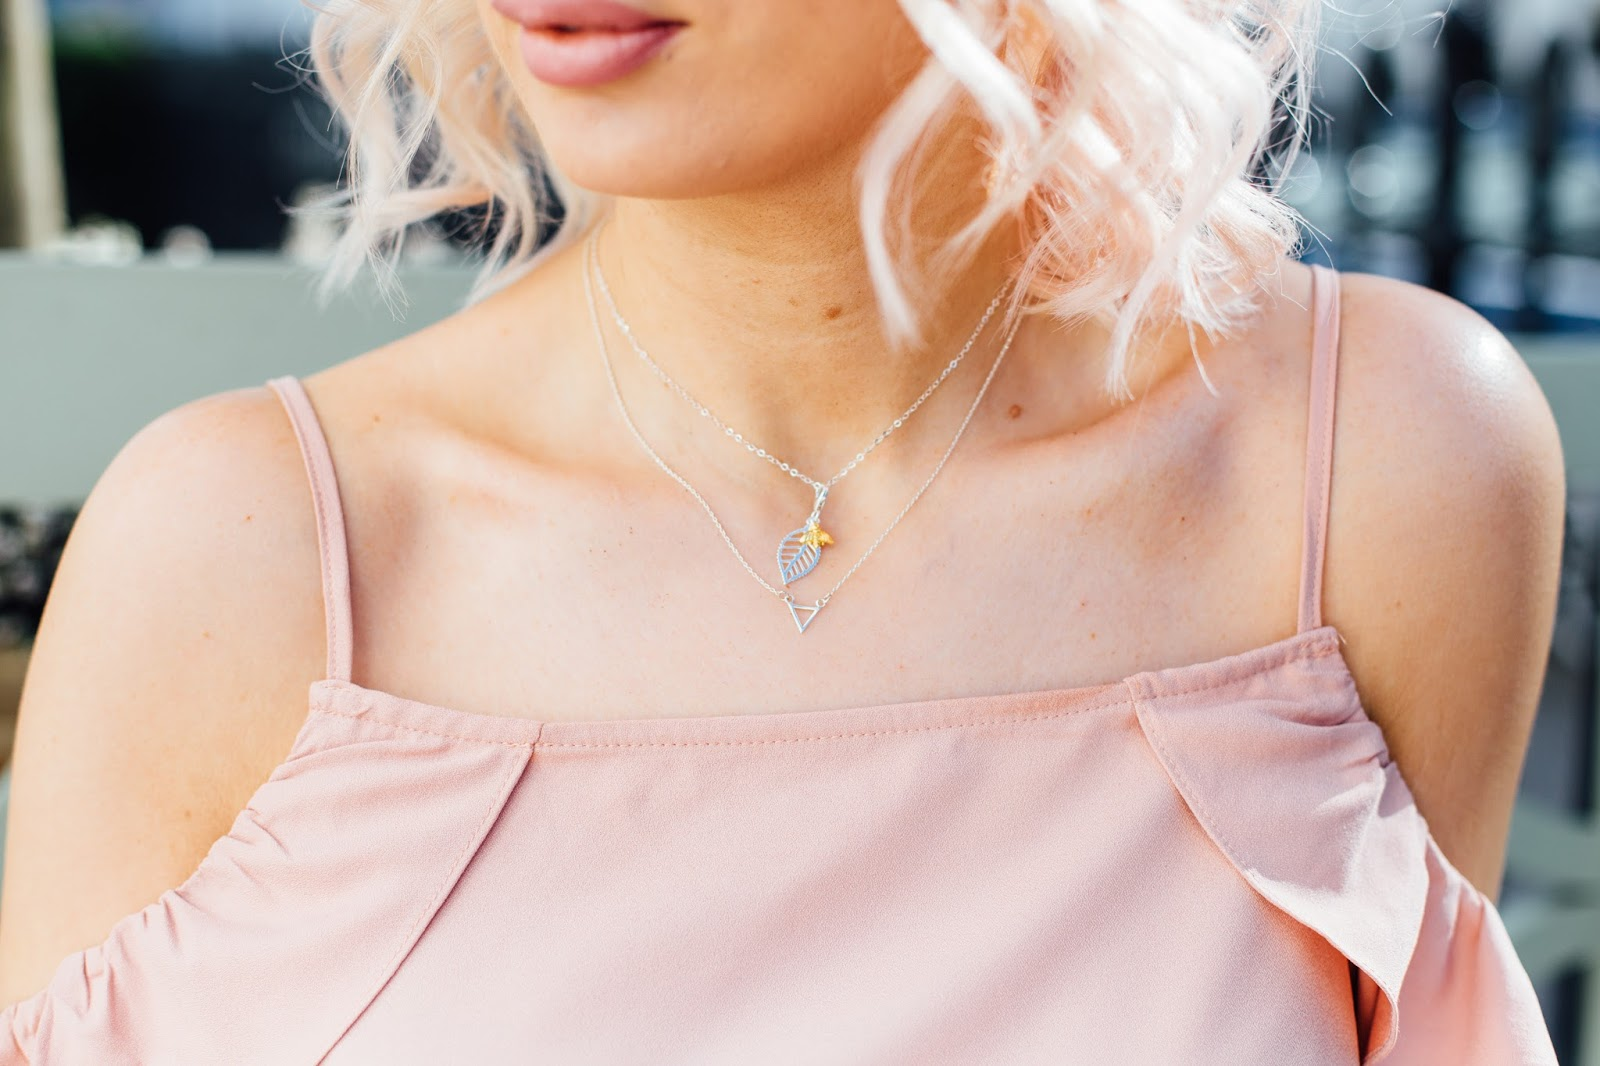 Silver necklaces from Jewellery Box styled with pink dress